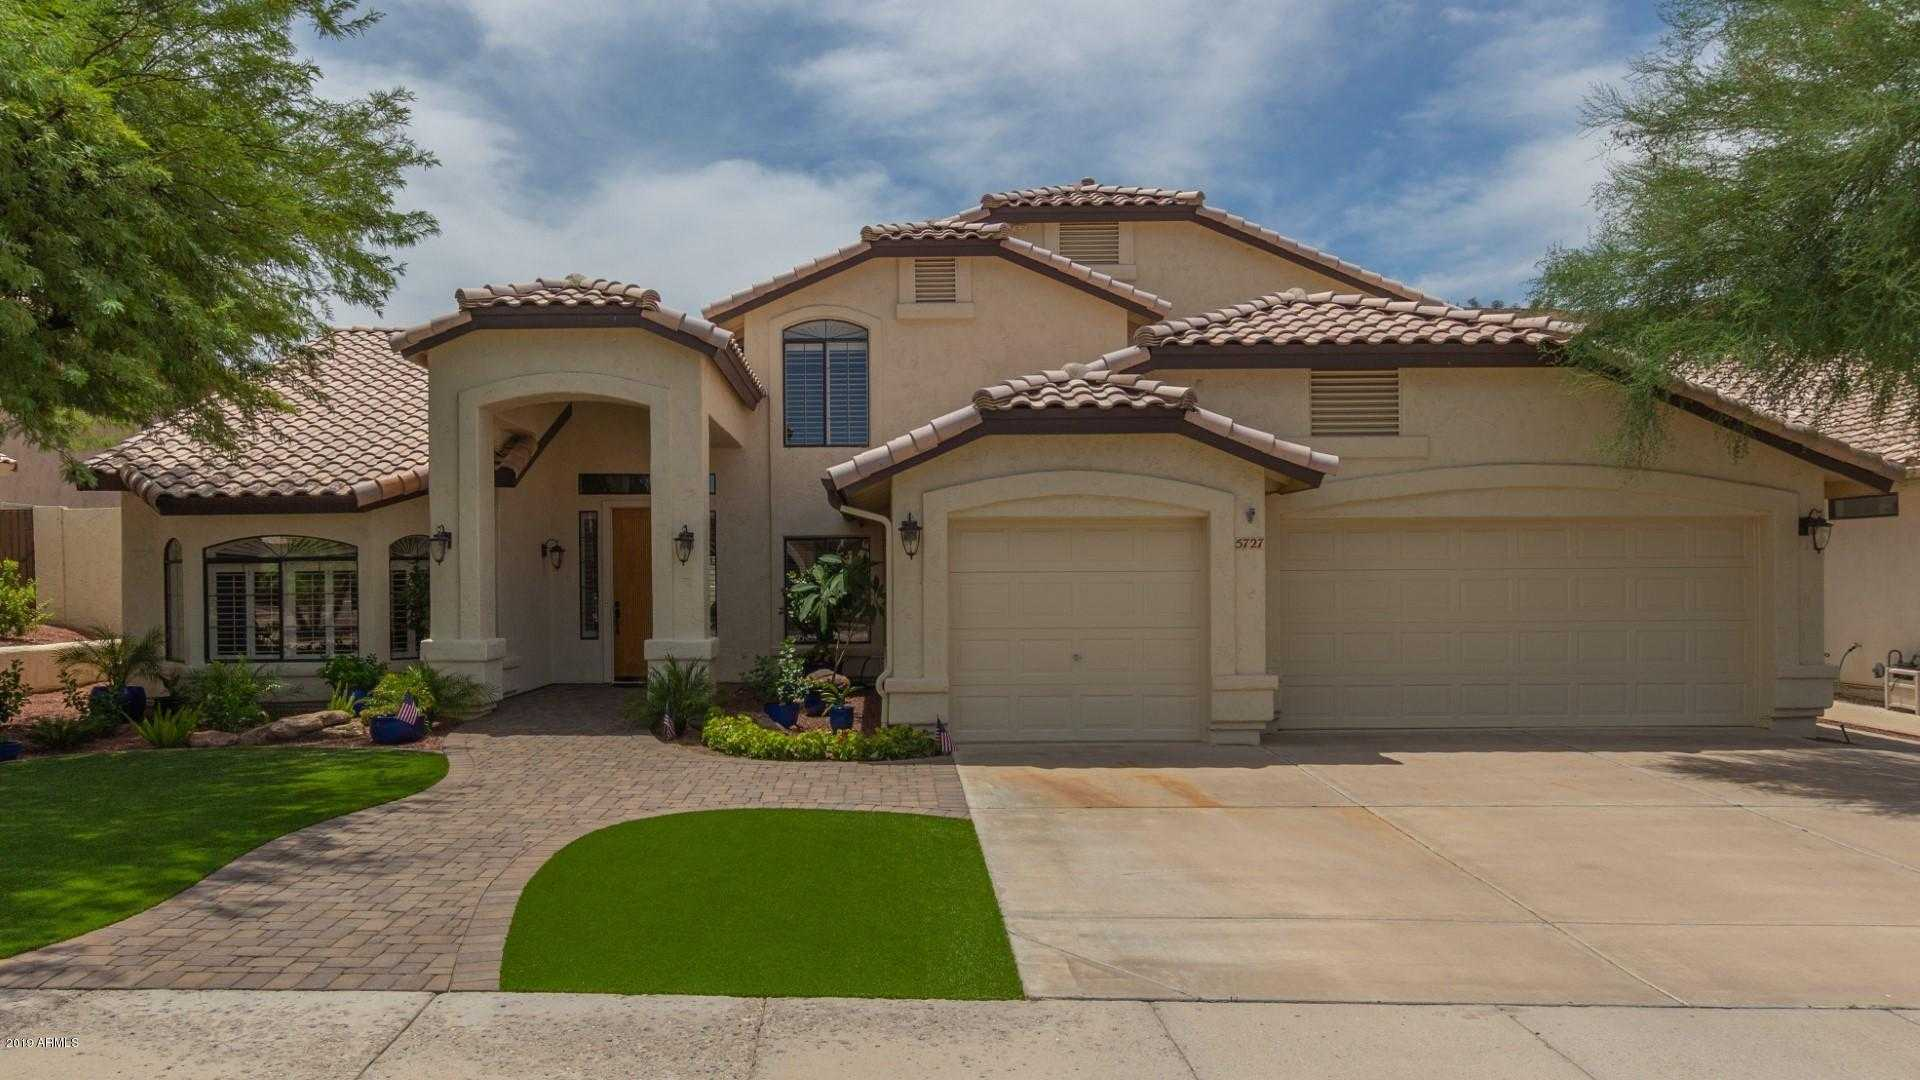 $429,900 - 5Br/3Ba - Home for Sale in Pinnacle Hill Lot 1-259 Tr A-o, Glendale